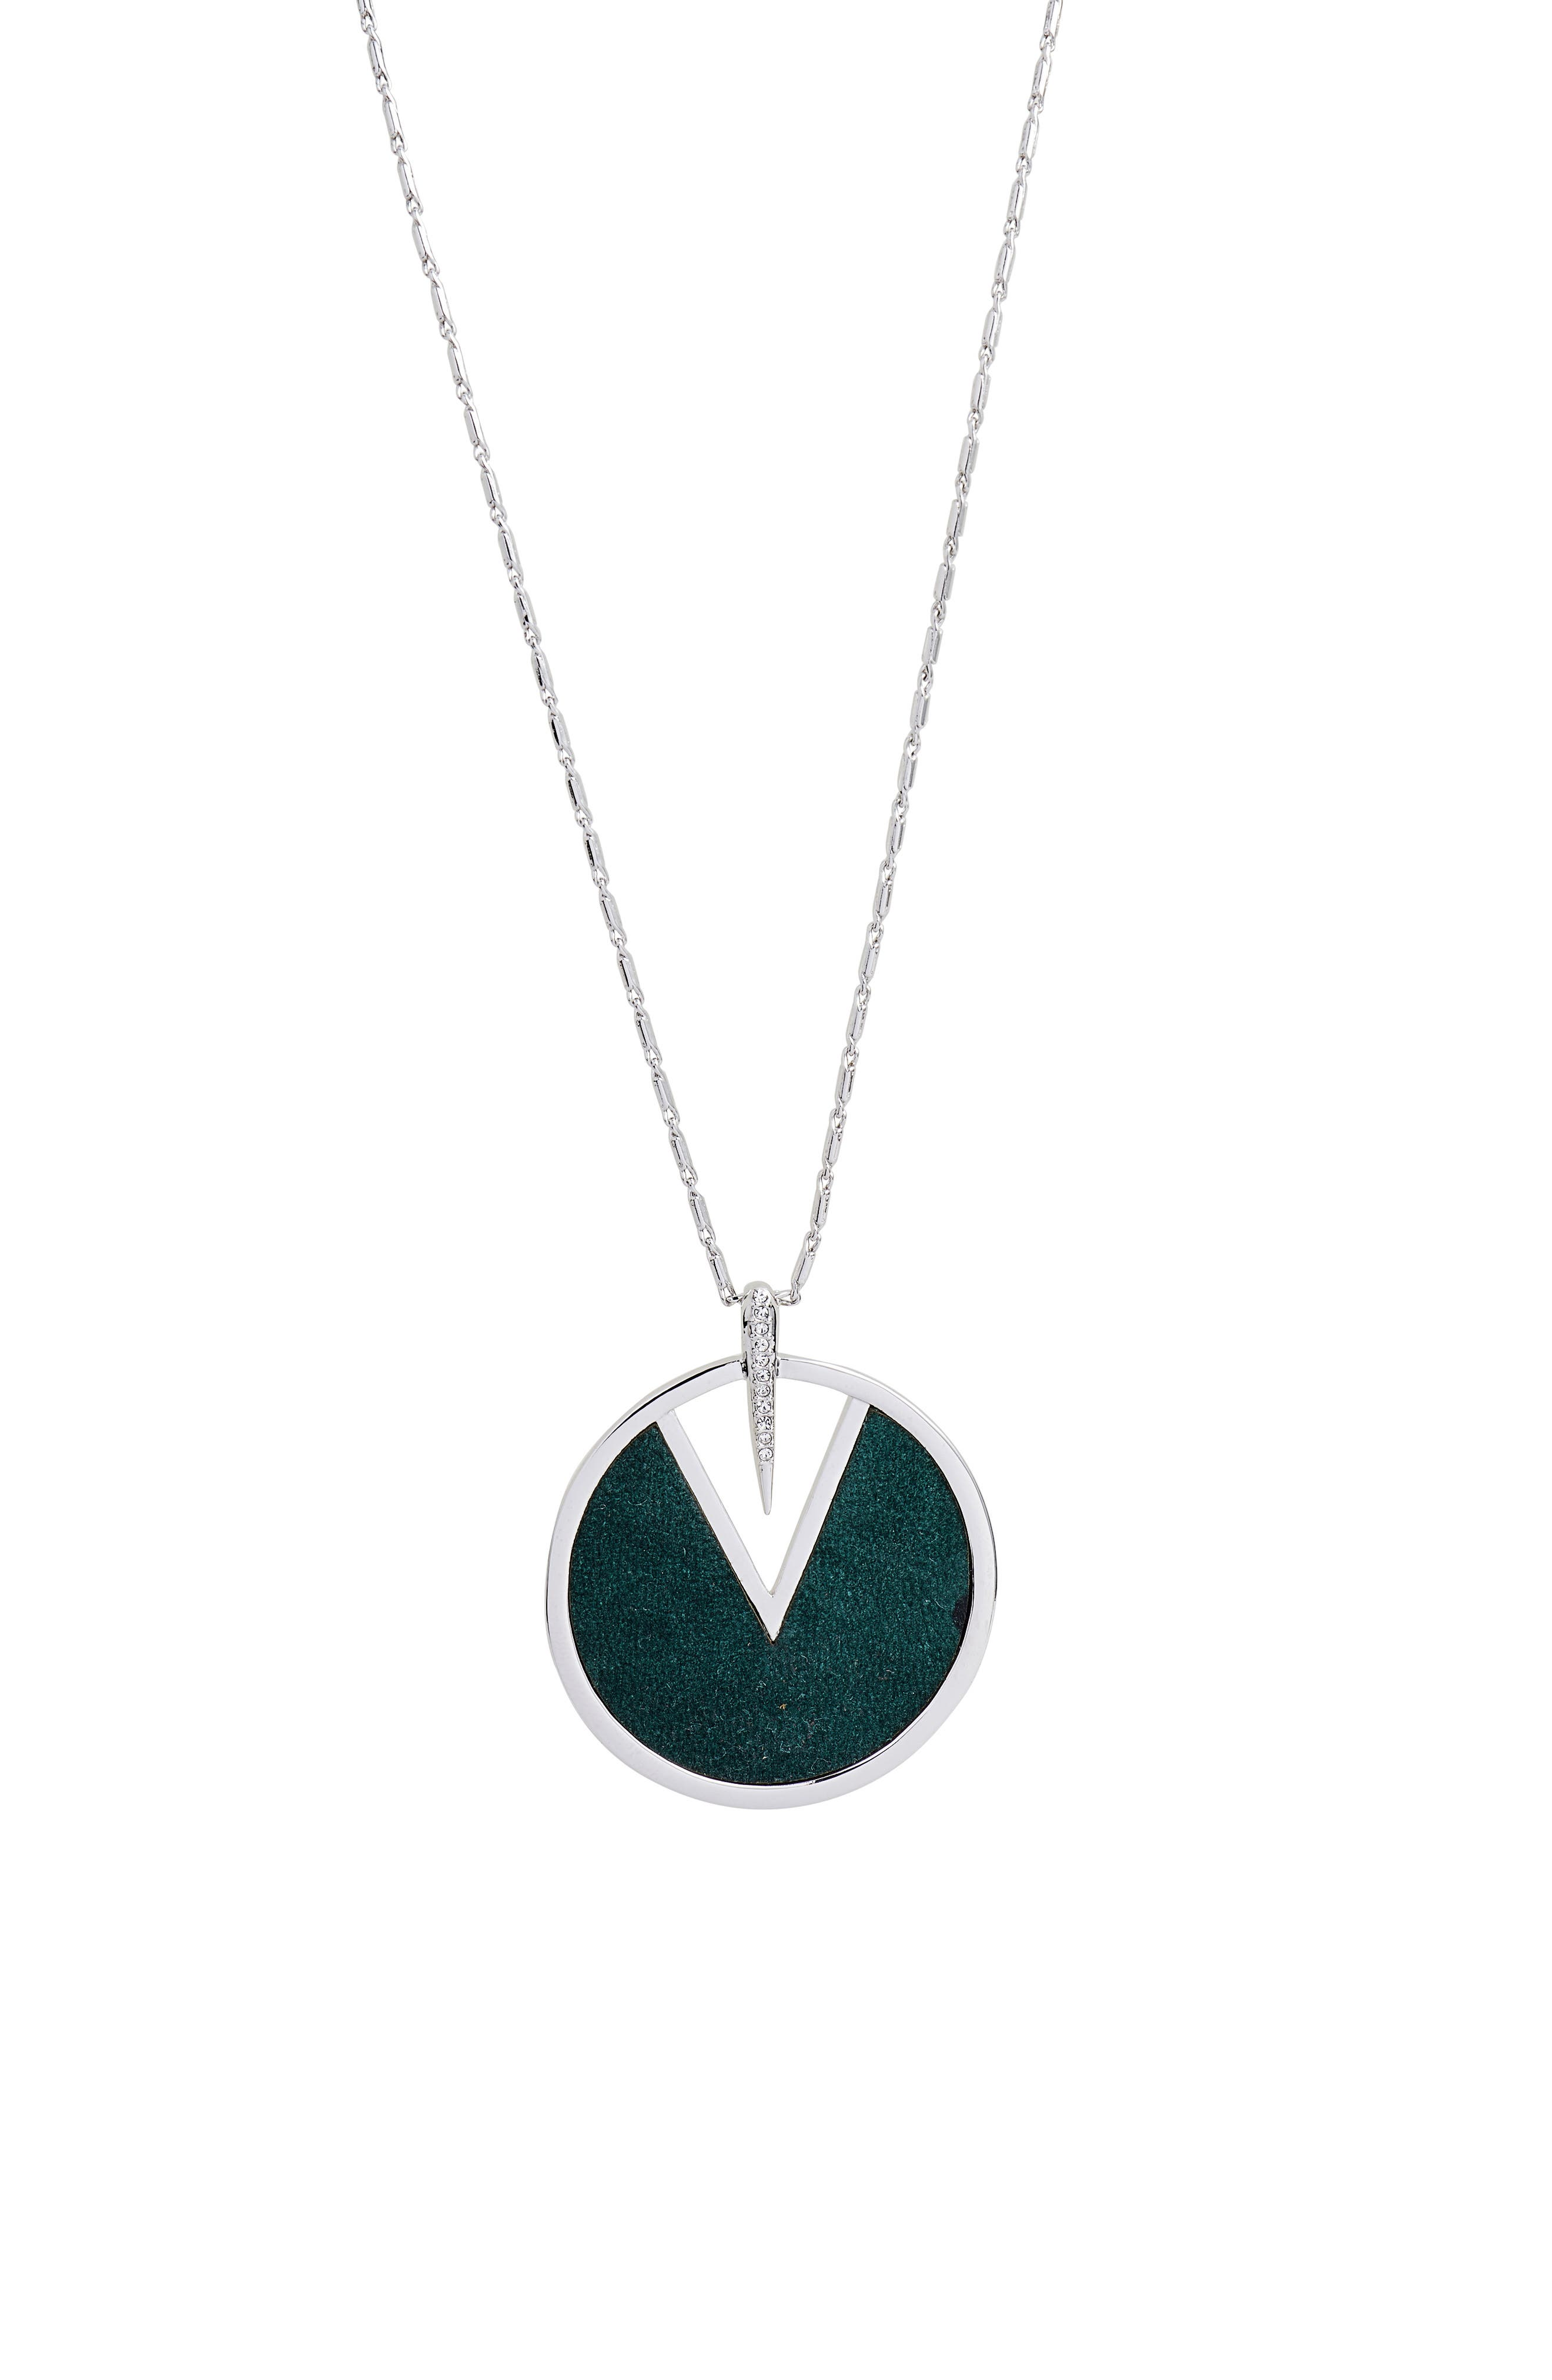 Inlaid Leather Pendant Necklace,                             Alternate thumbnail 2, color,                             040